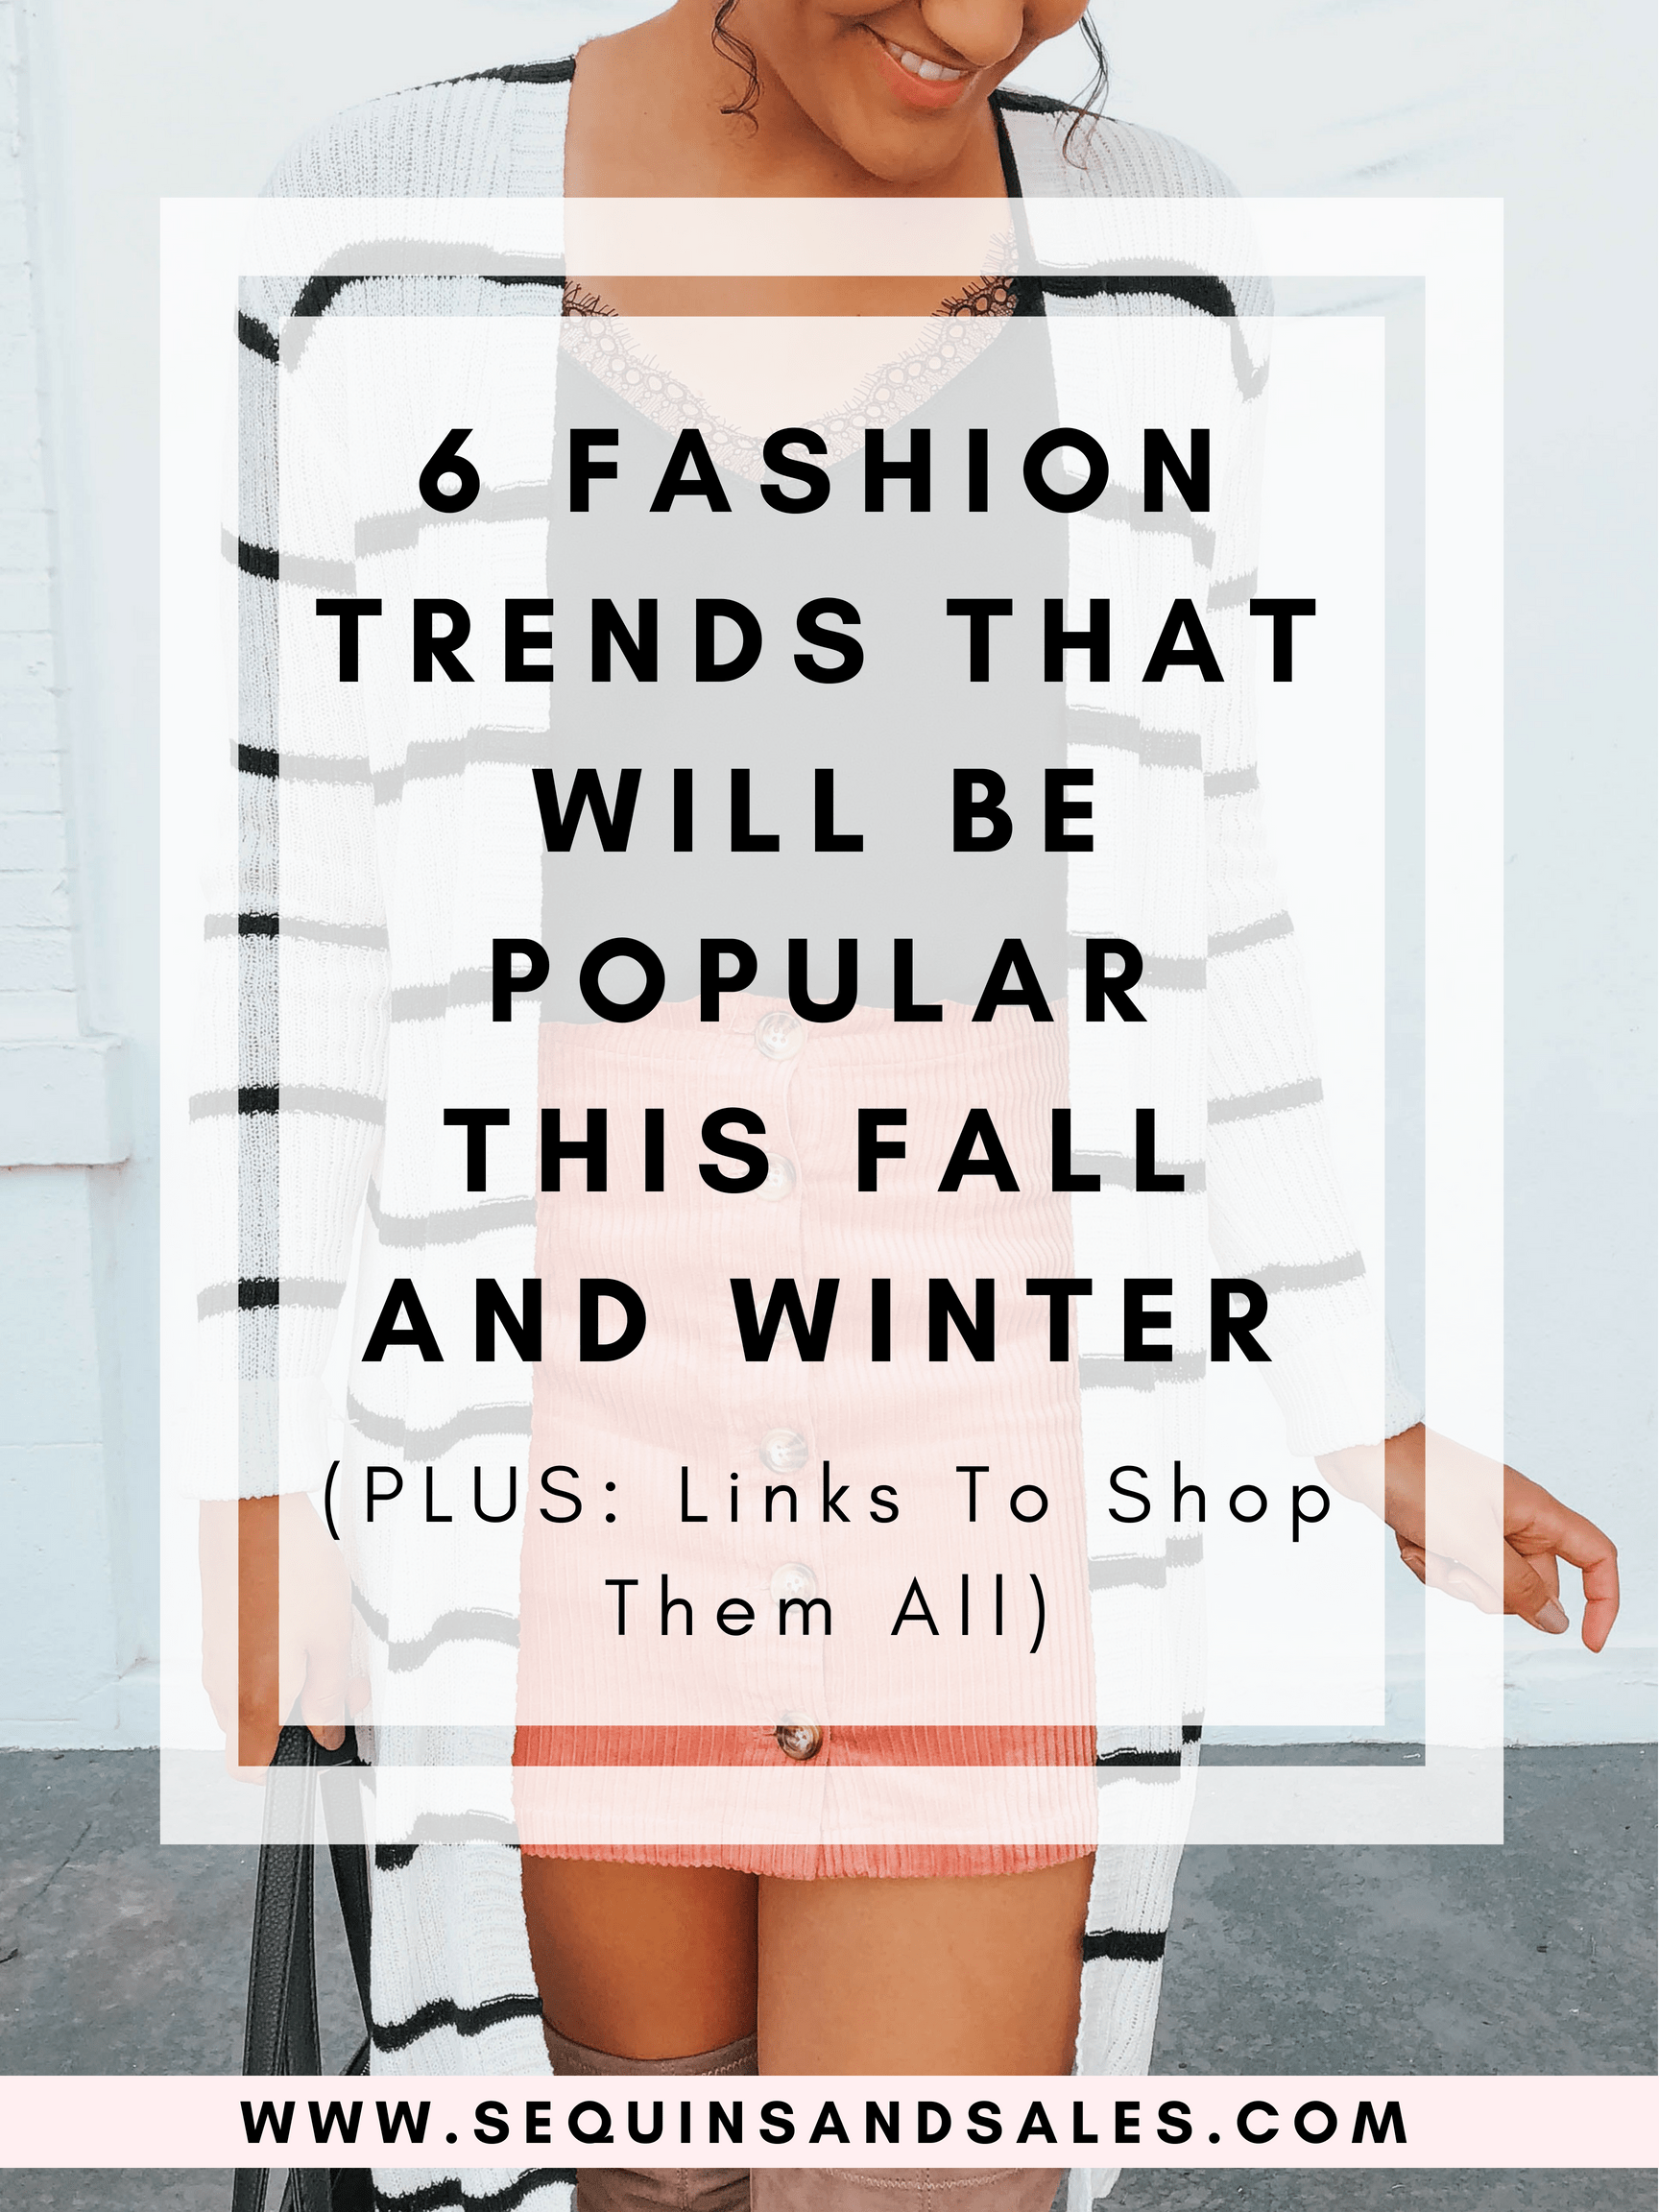 6-fashion-trends-that-will-be-popular-this-fall-and-winter